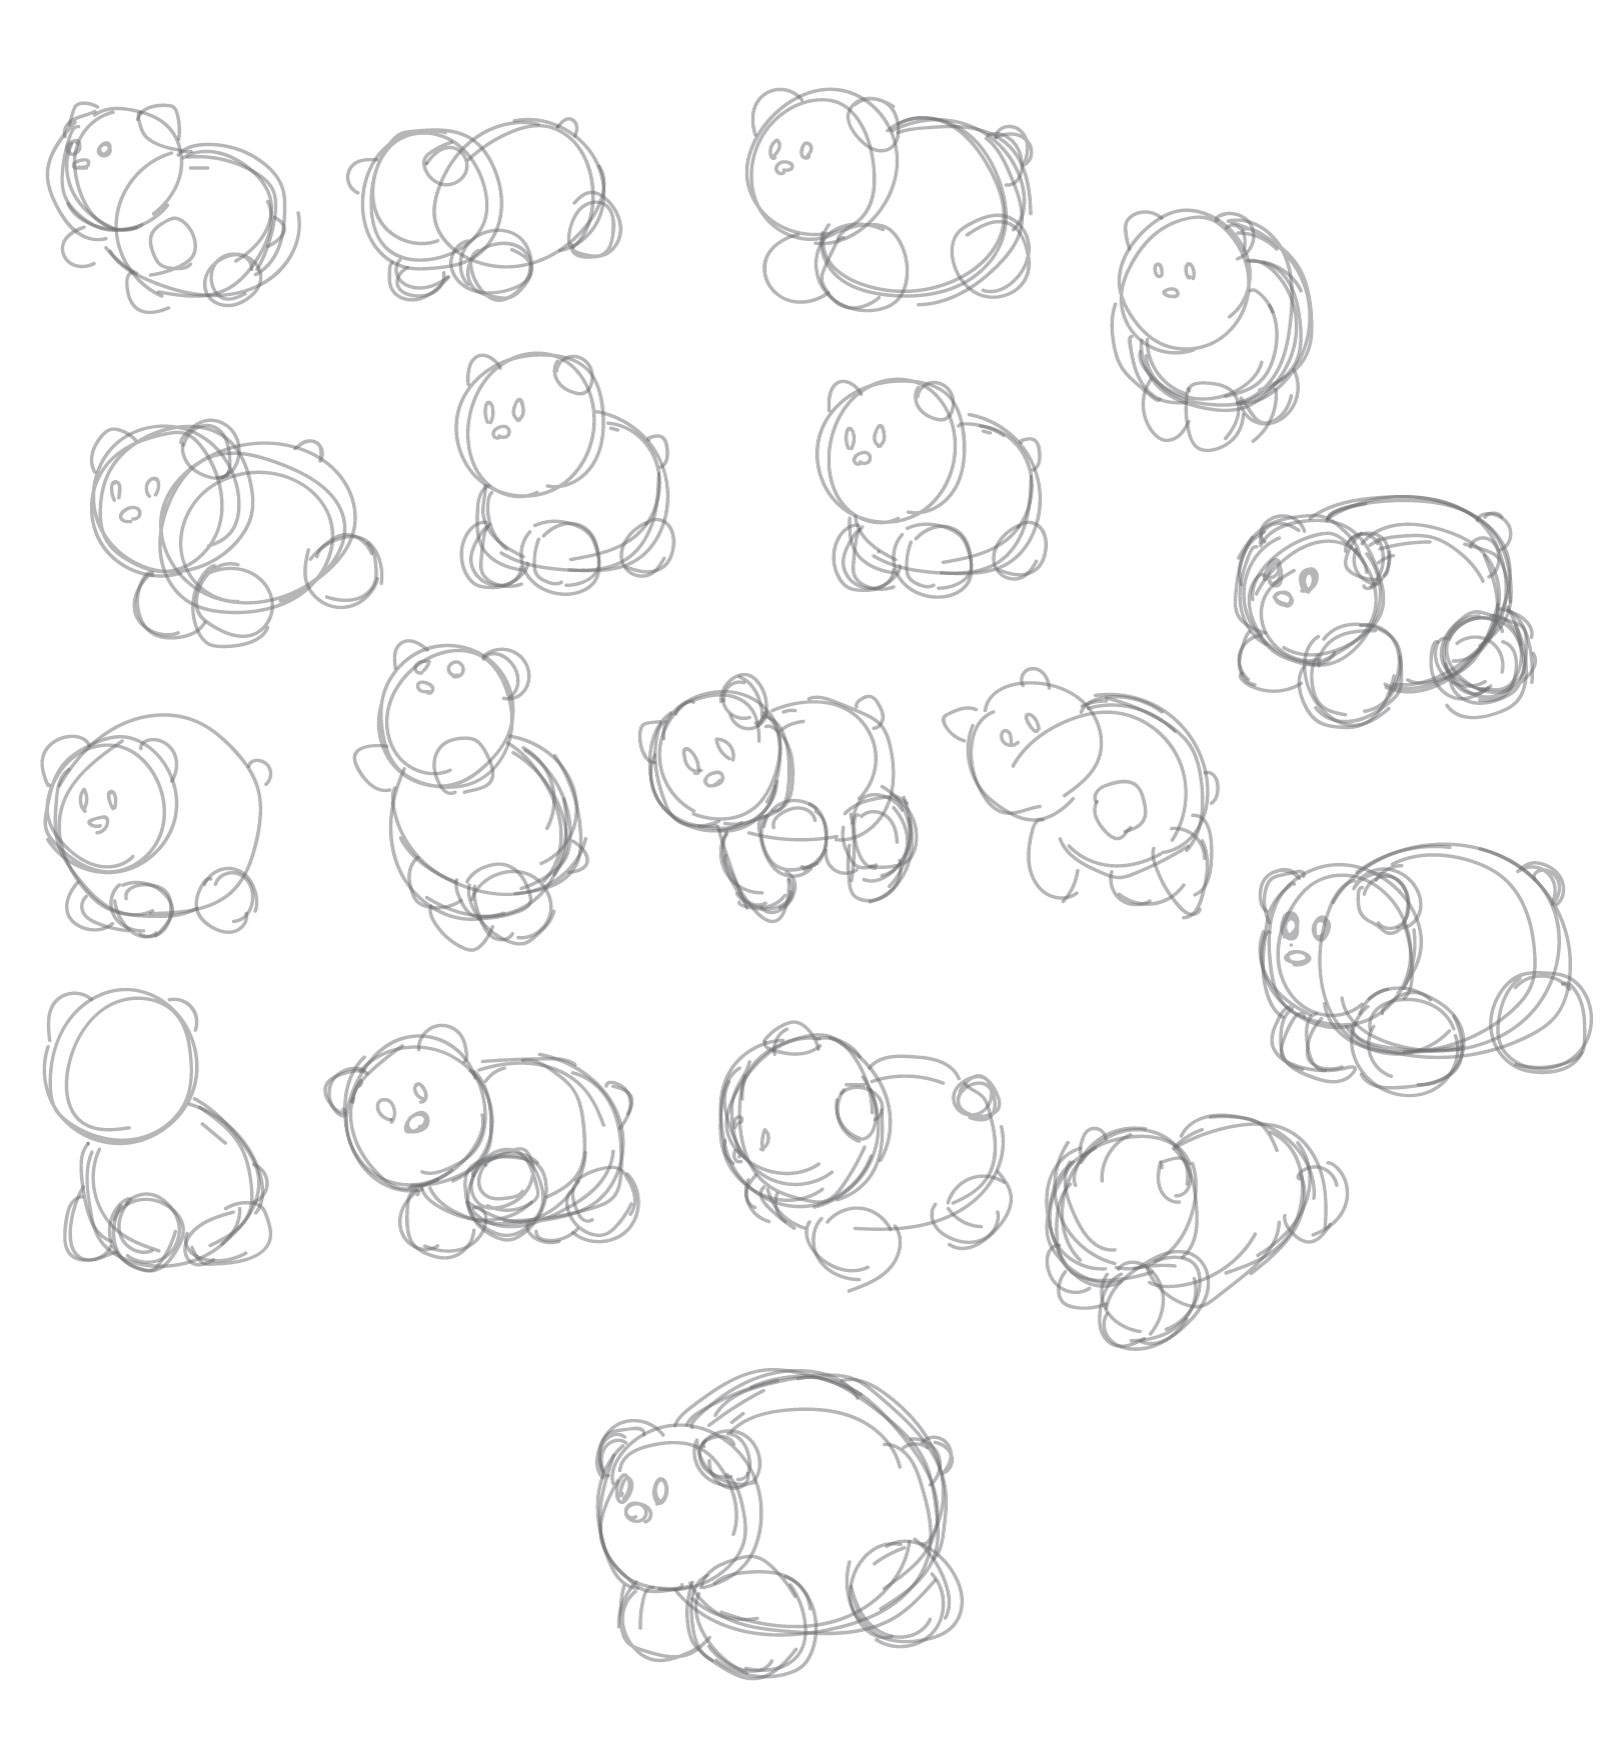 Several sketches of the water bear in different poses